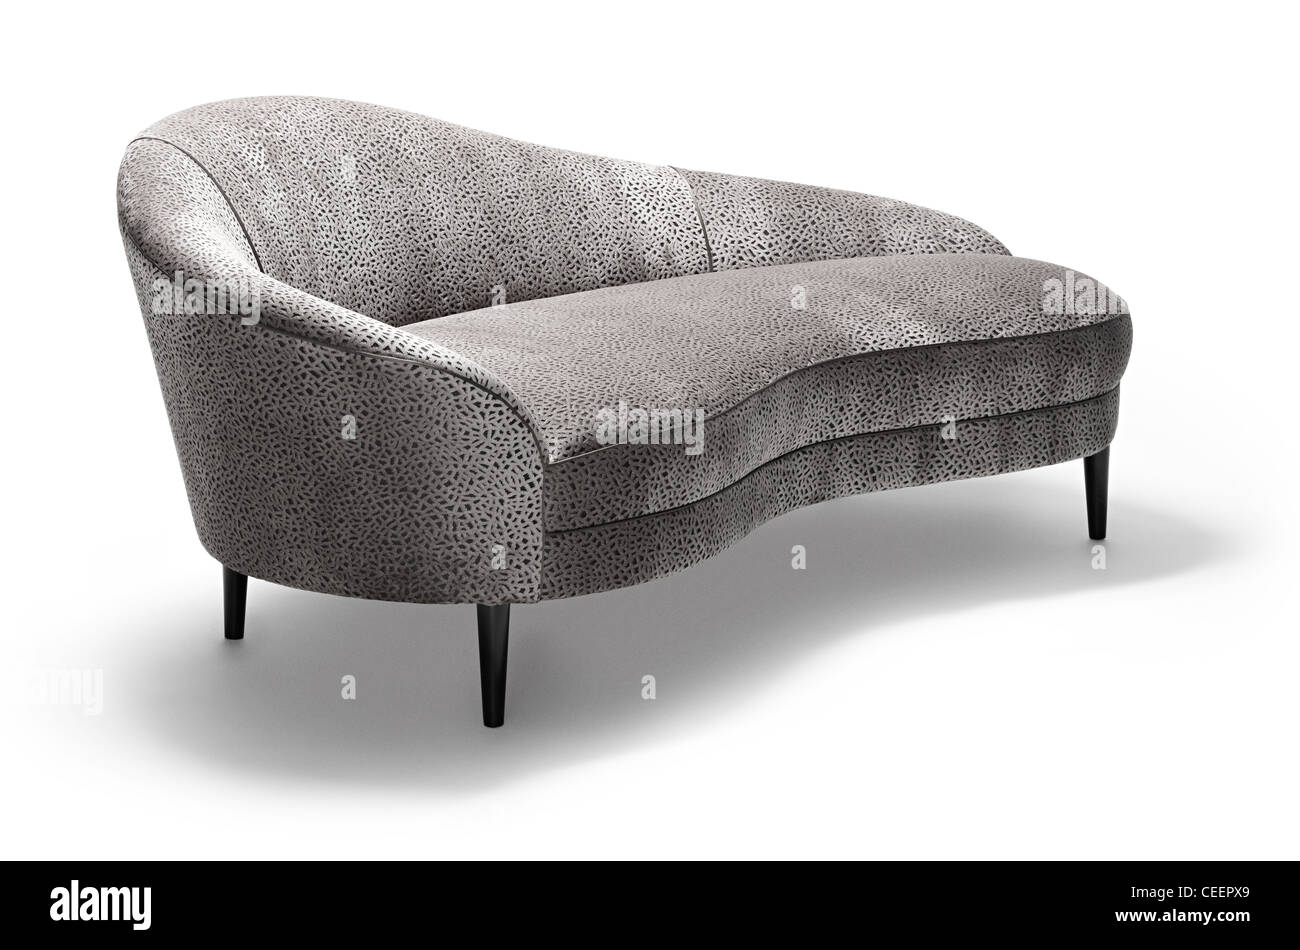 Rounded chaise - Stock Image